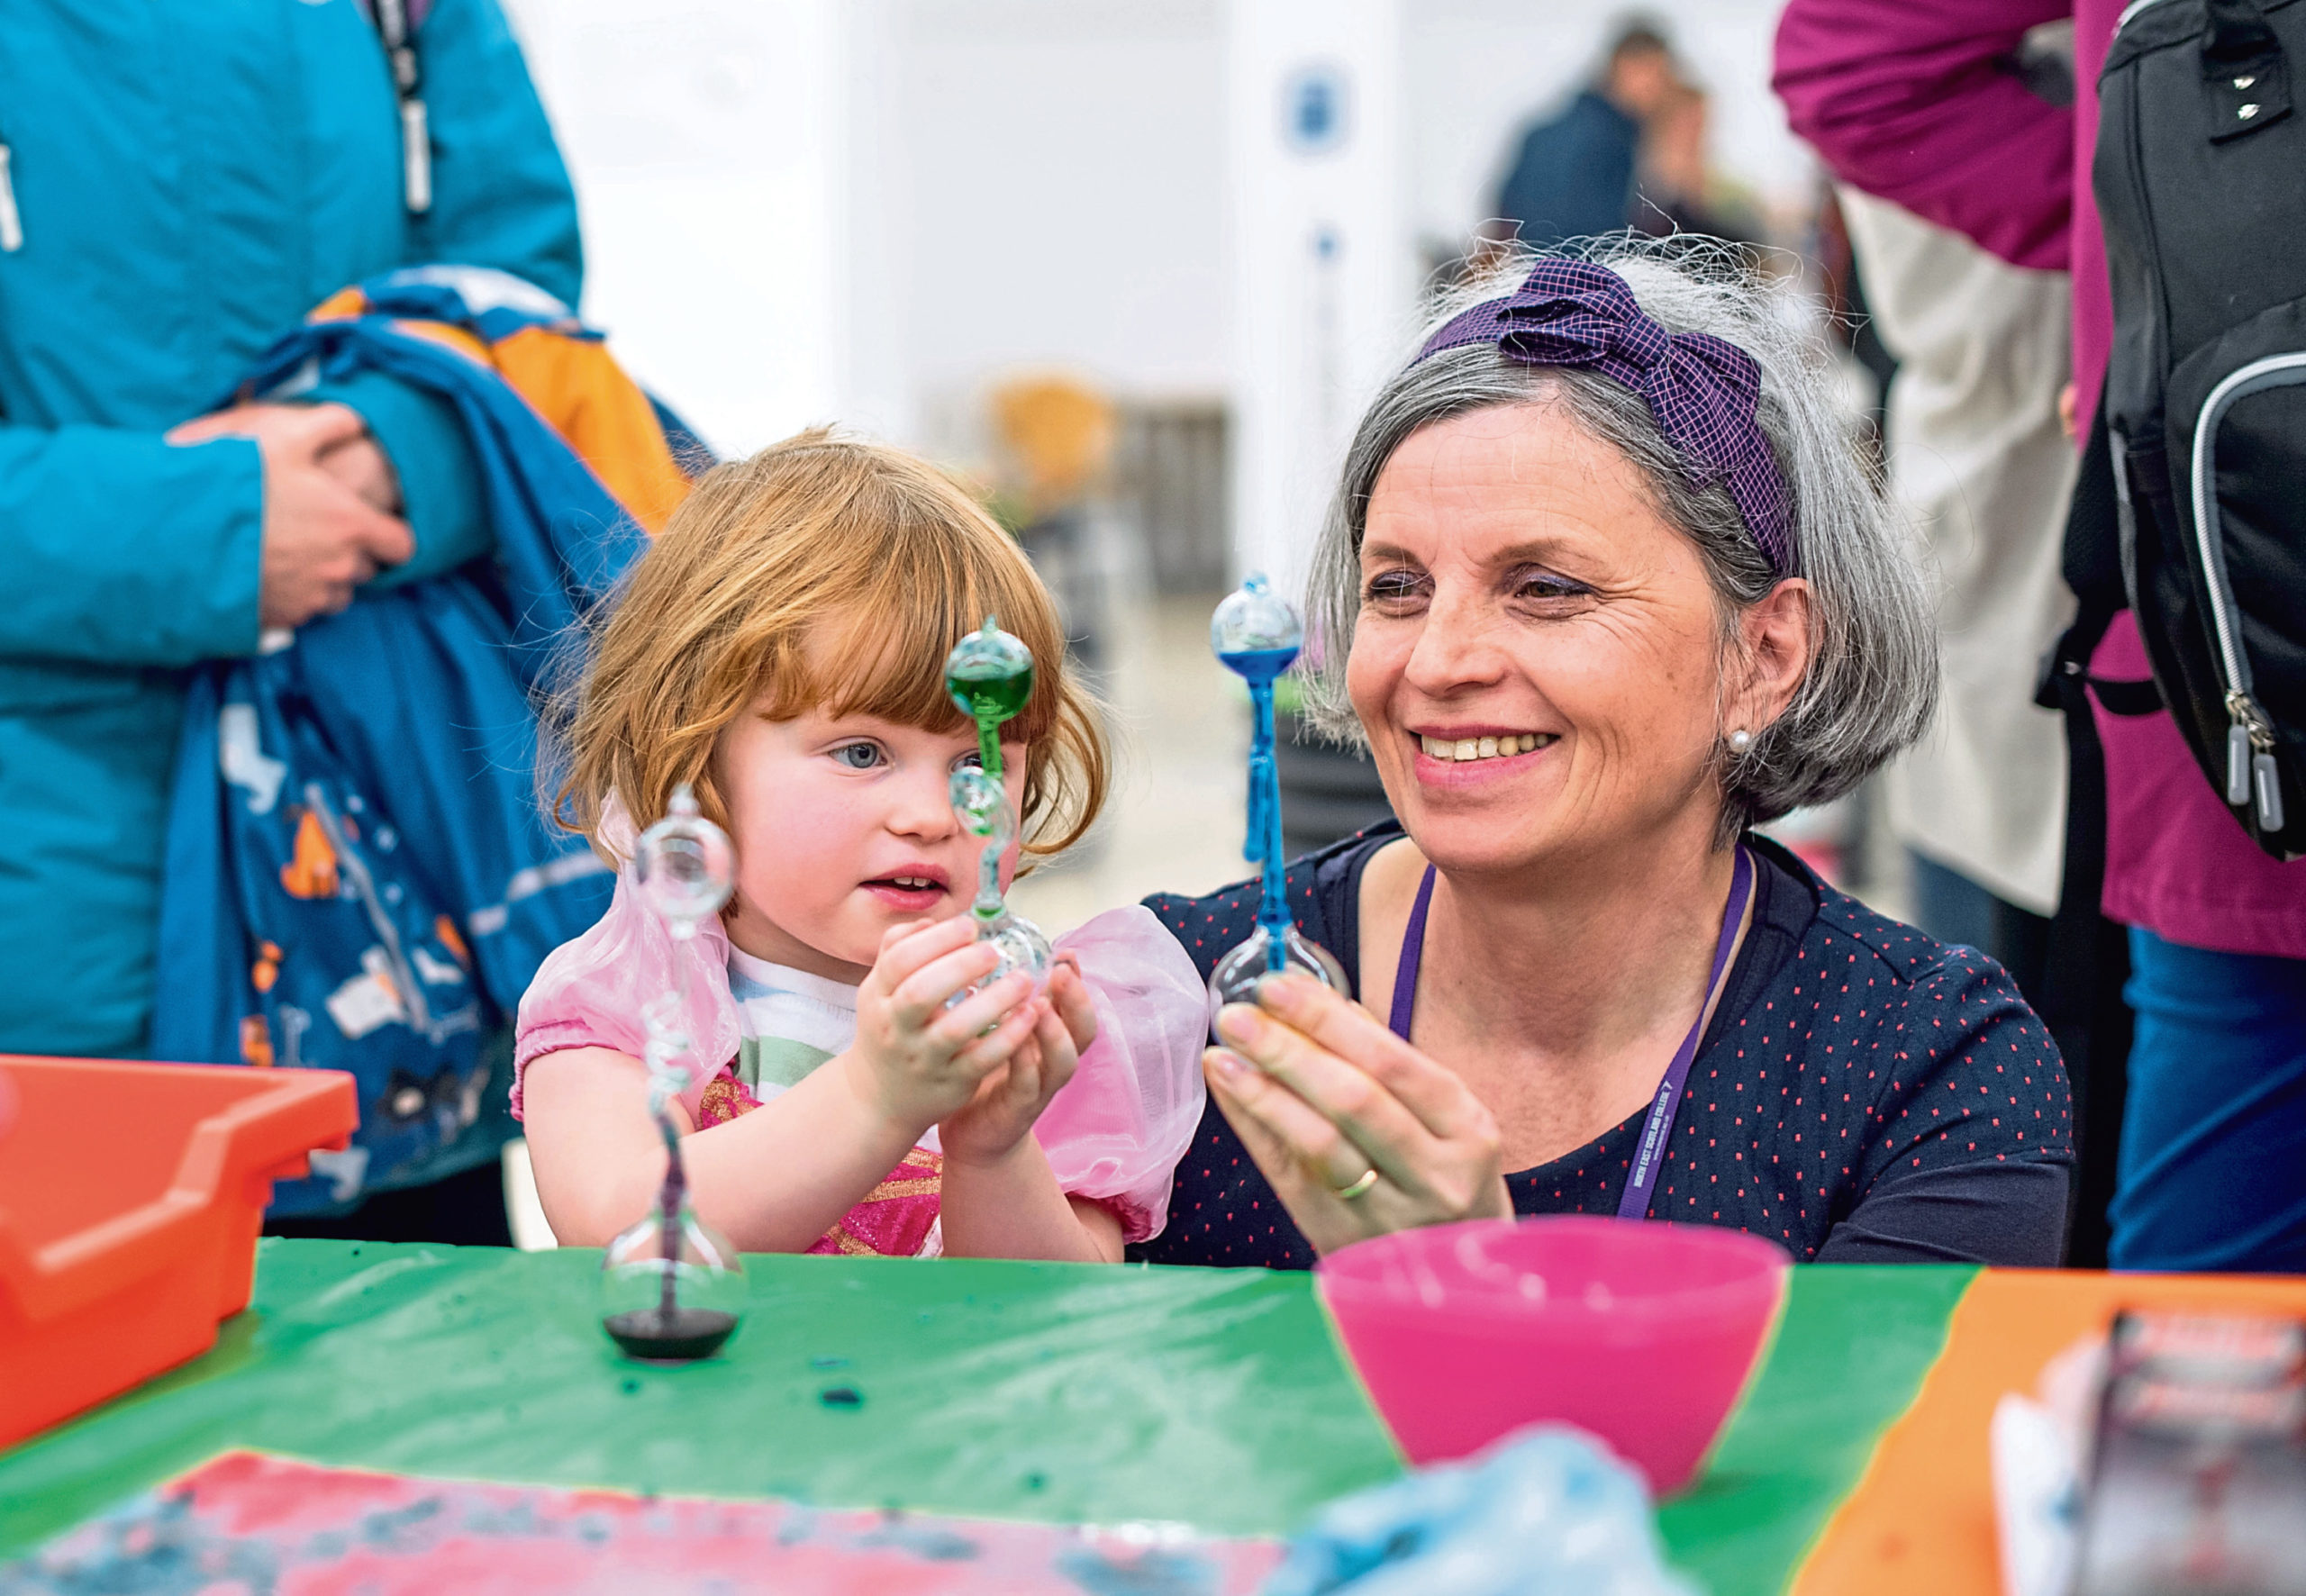 Little magicians learning how to make floating butterflies this weekend at Aberdeen Science Centre's Wizard School